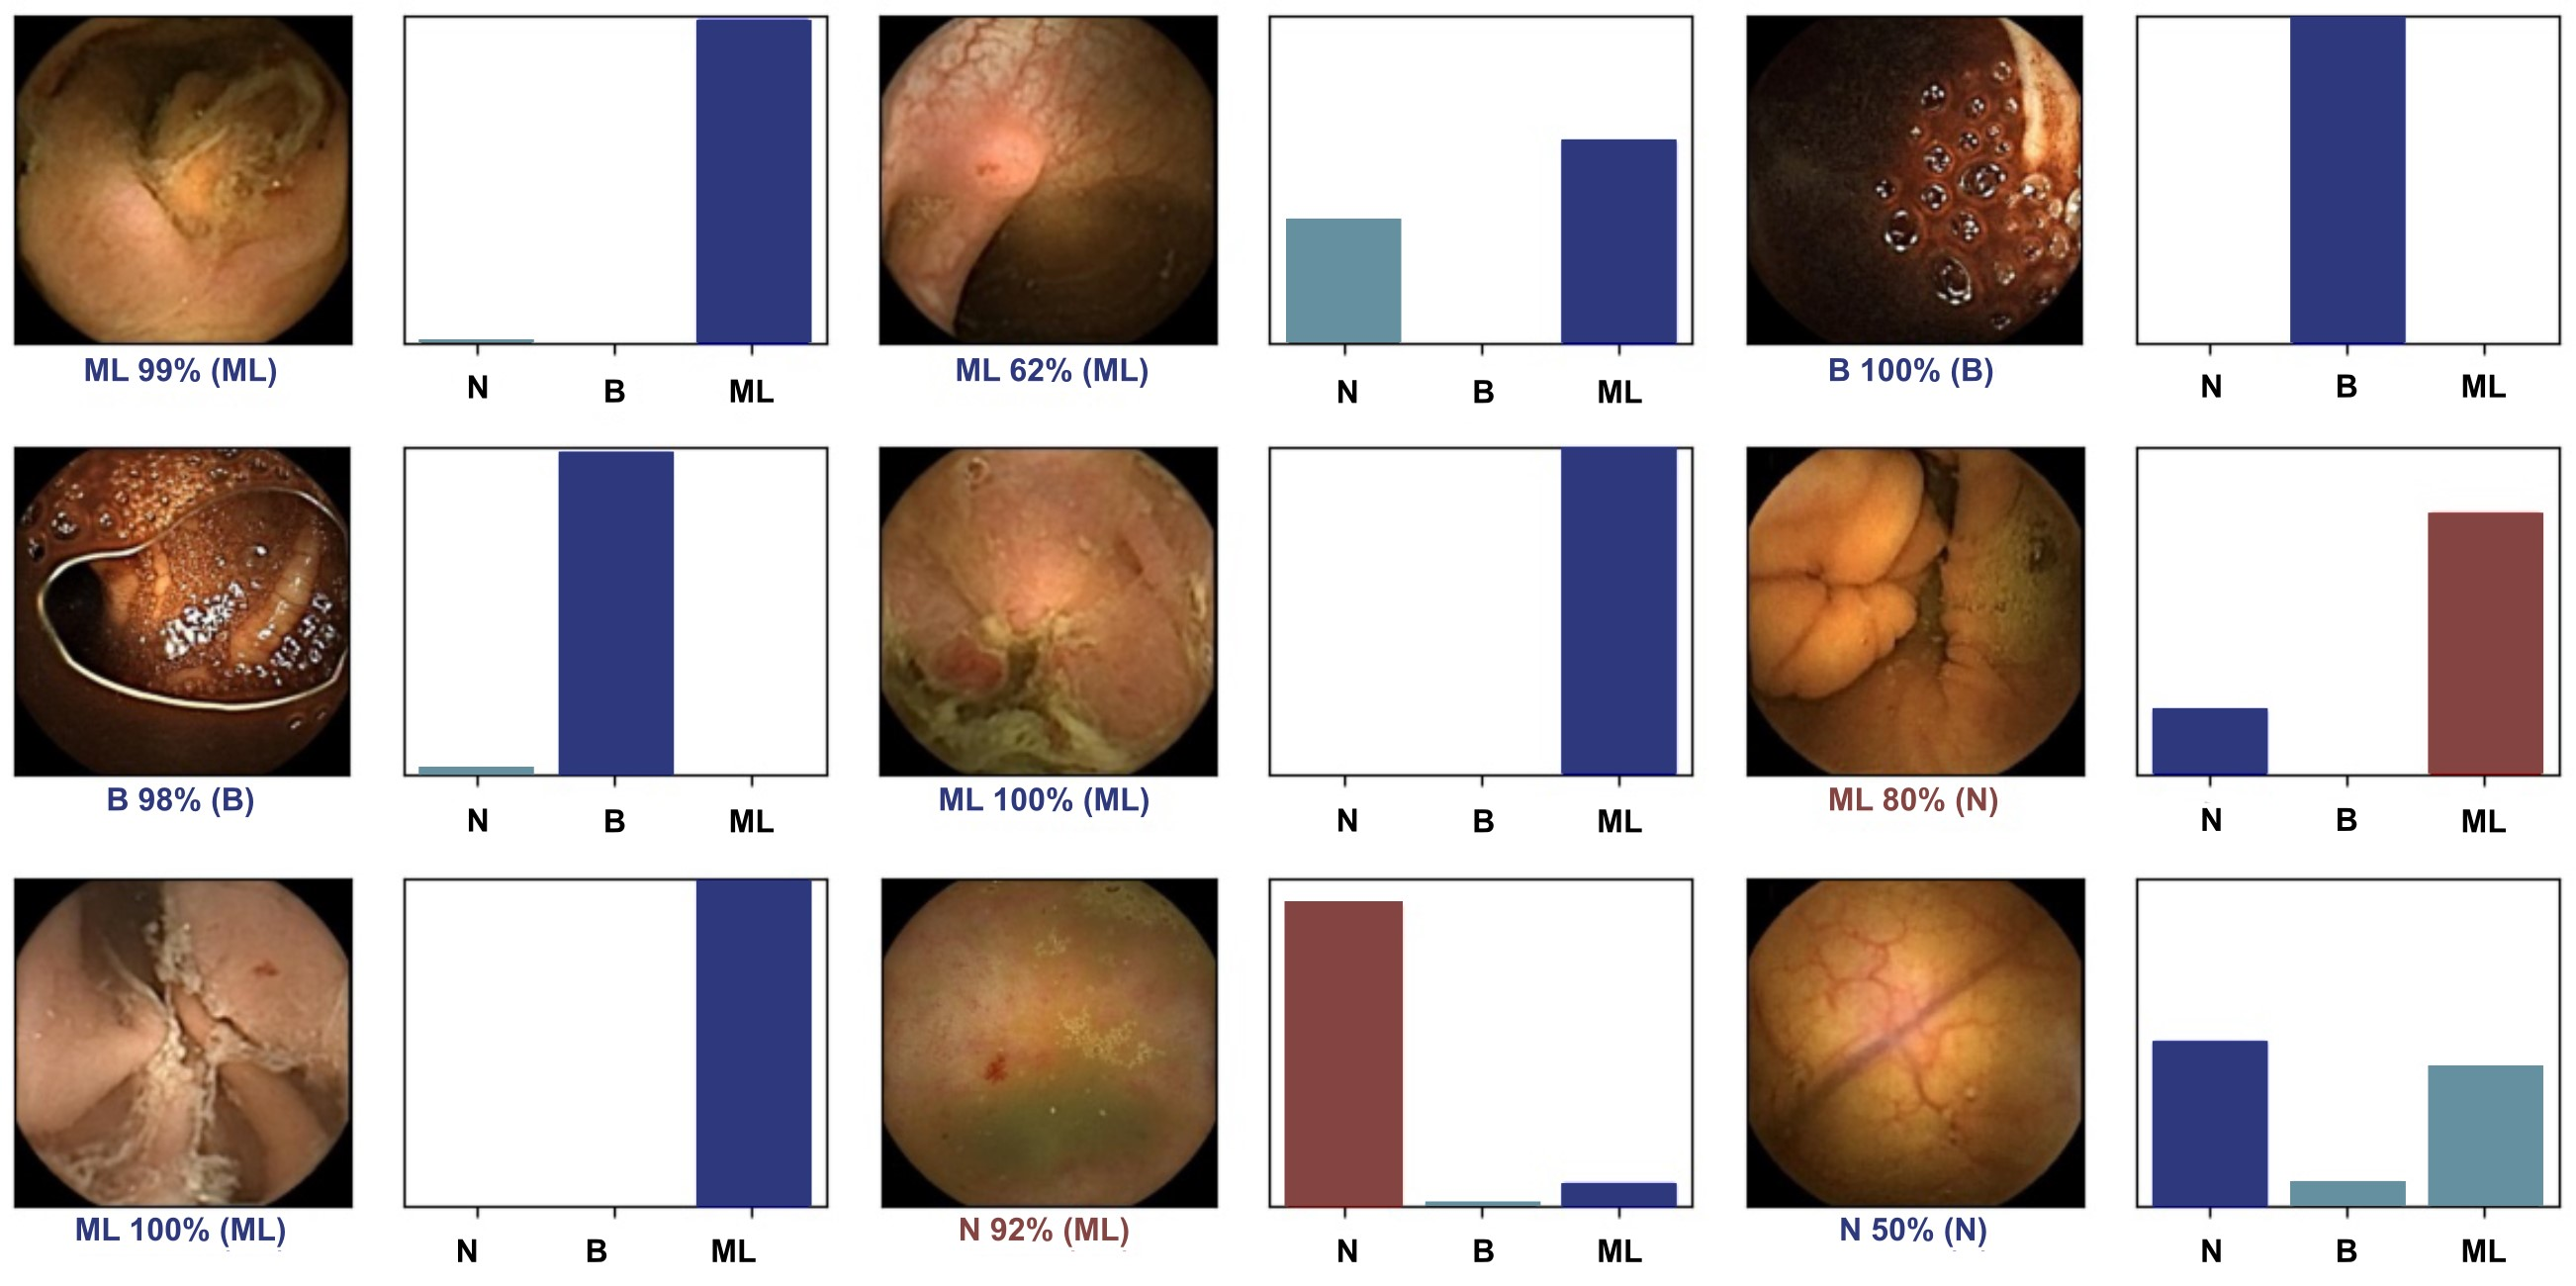 Figure 1 - Output obtained from the application of the convolutional neural network. N: normal mucosa; B - blood or hematic residues; ML – mucosal lesions.